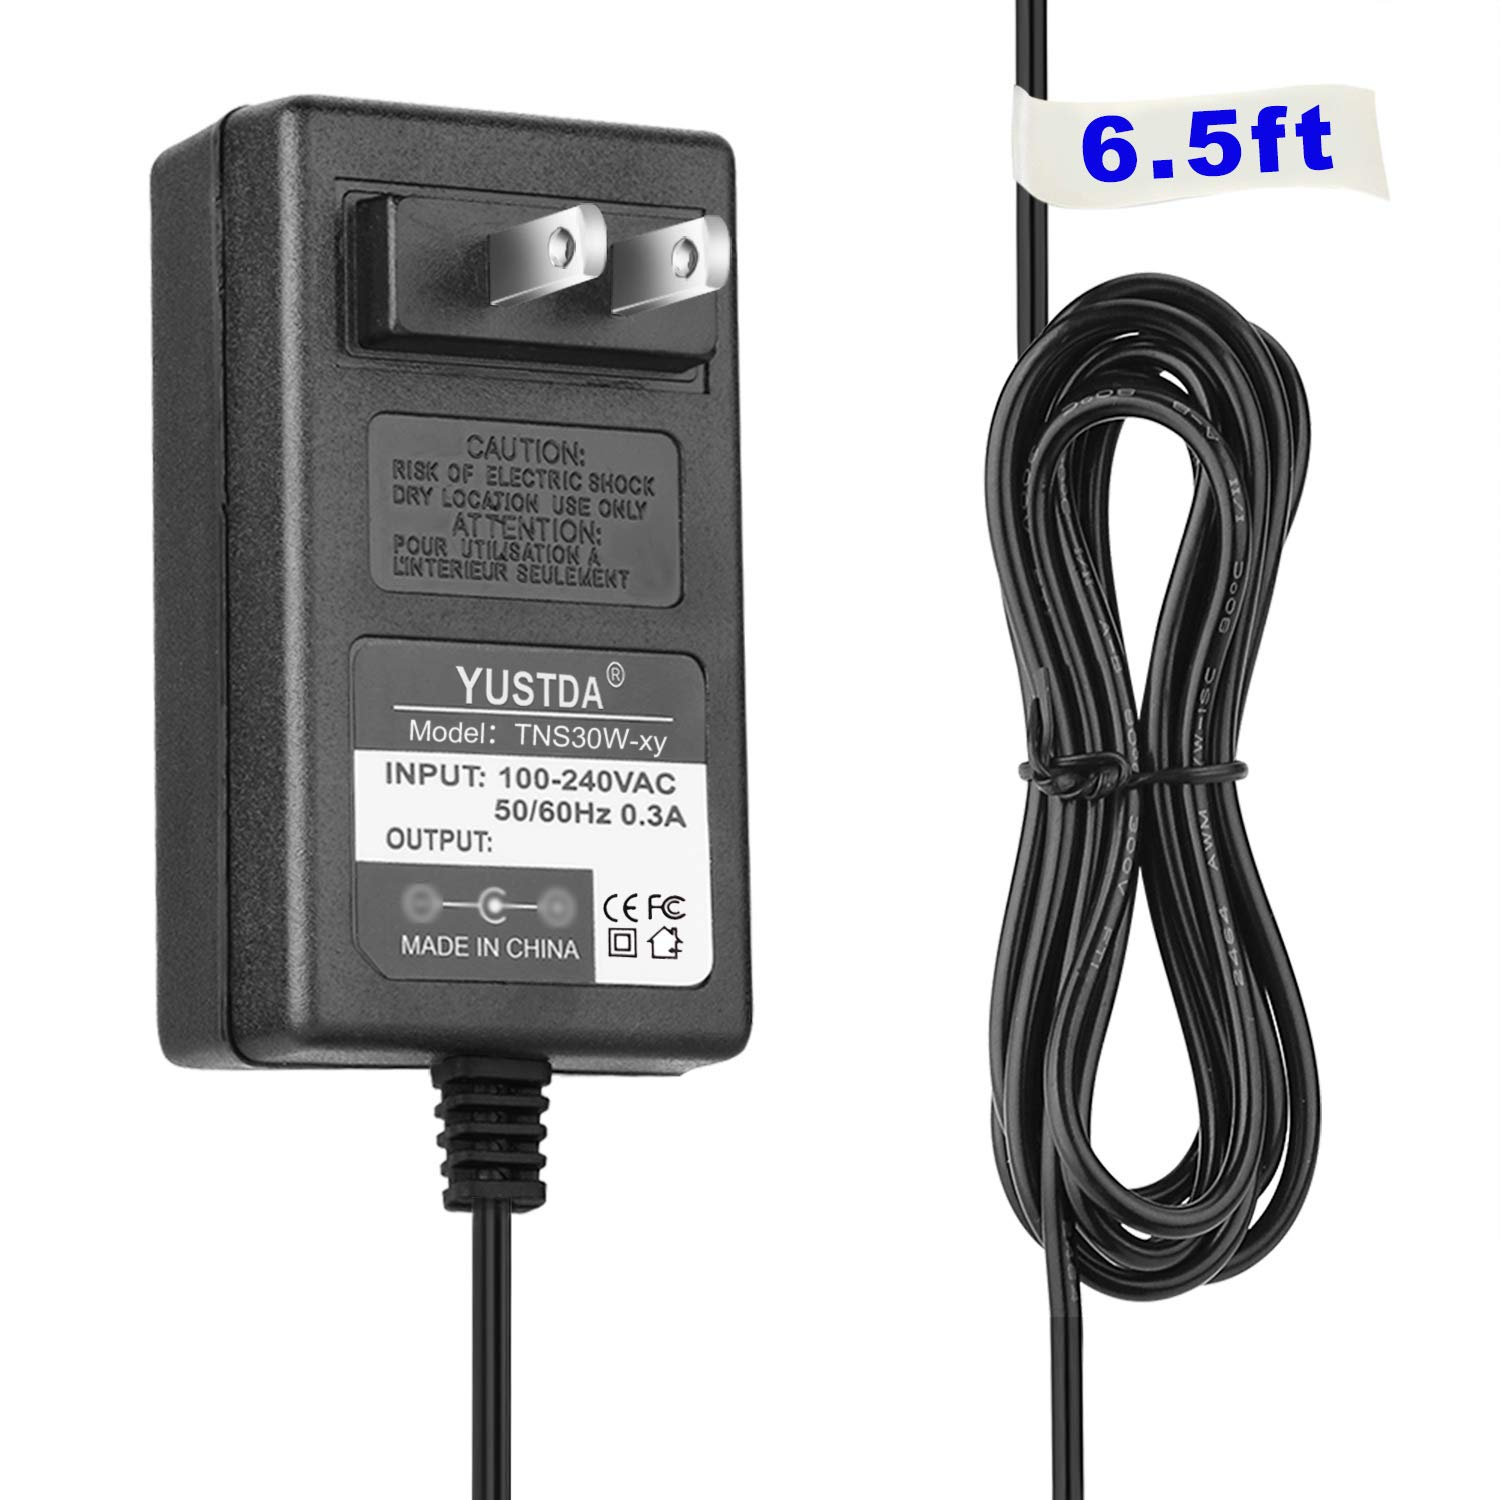 6.5Ft AC/DC Adapter for Tria Hair Removal Laser 4X Device TRIABEAUTY Model: LHR 4.0 TRIA Beauty LHR 3.0 THR-25 Hair Syst TRIA Beauty LHR 3.0 THR-25 Hair System Power Supply Cord Cable Charger